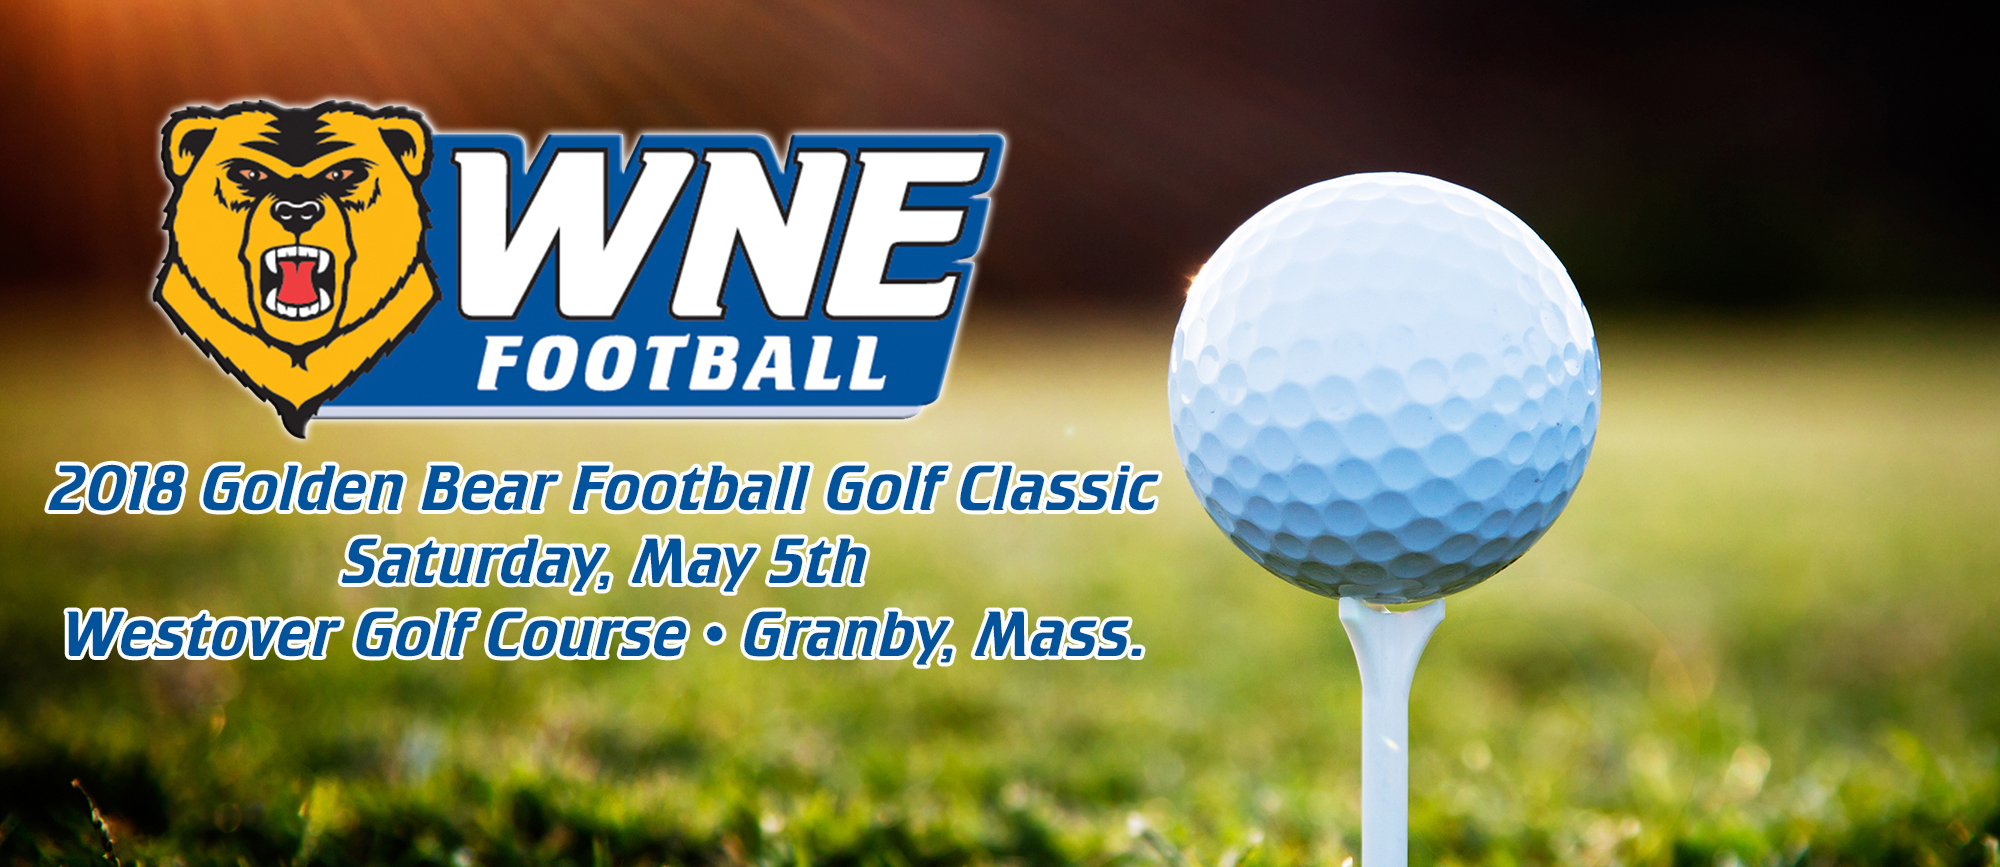 Golden Bear Football Golf Classic Set for Saturday, May 5th